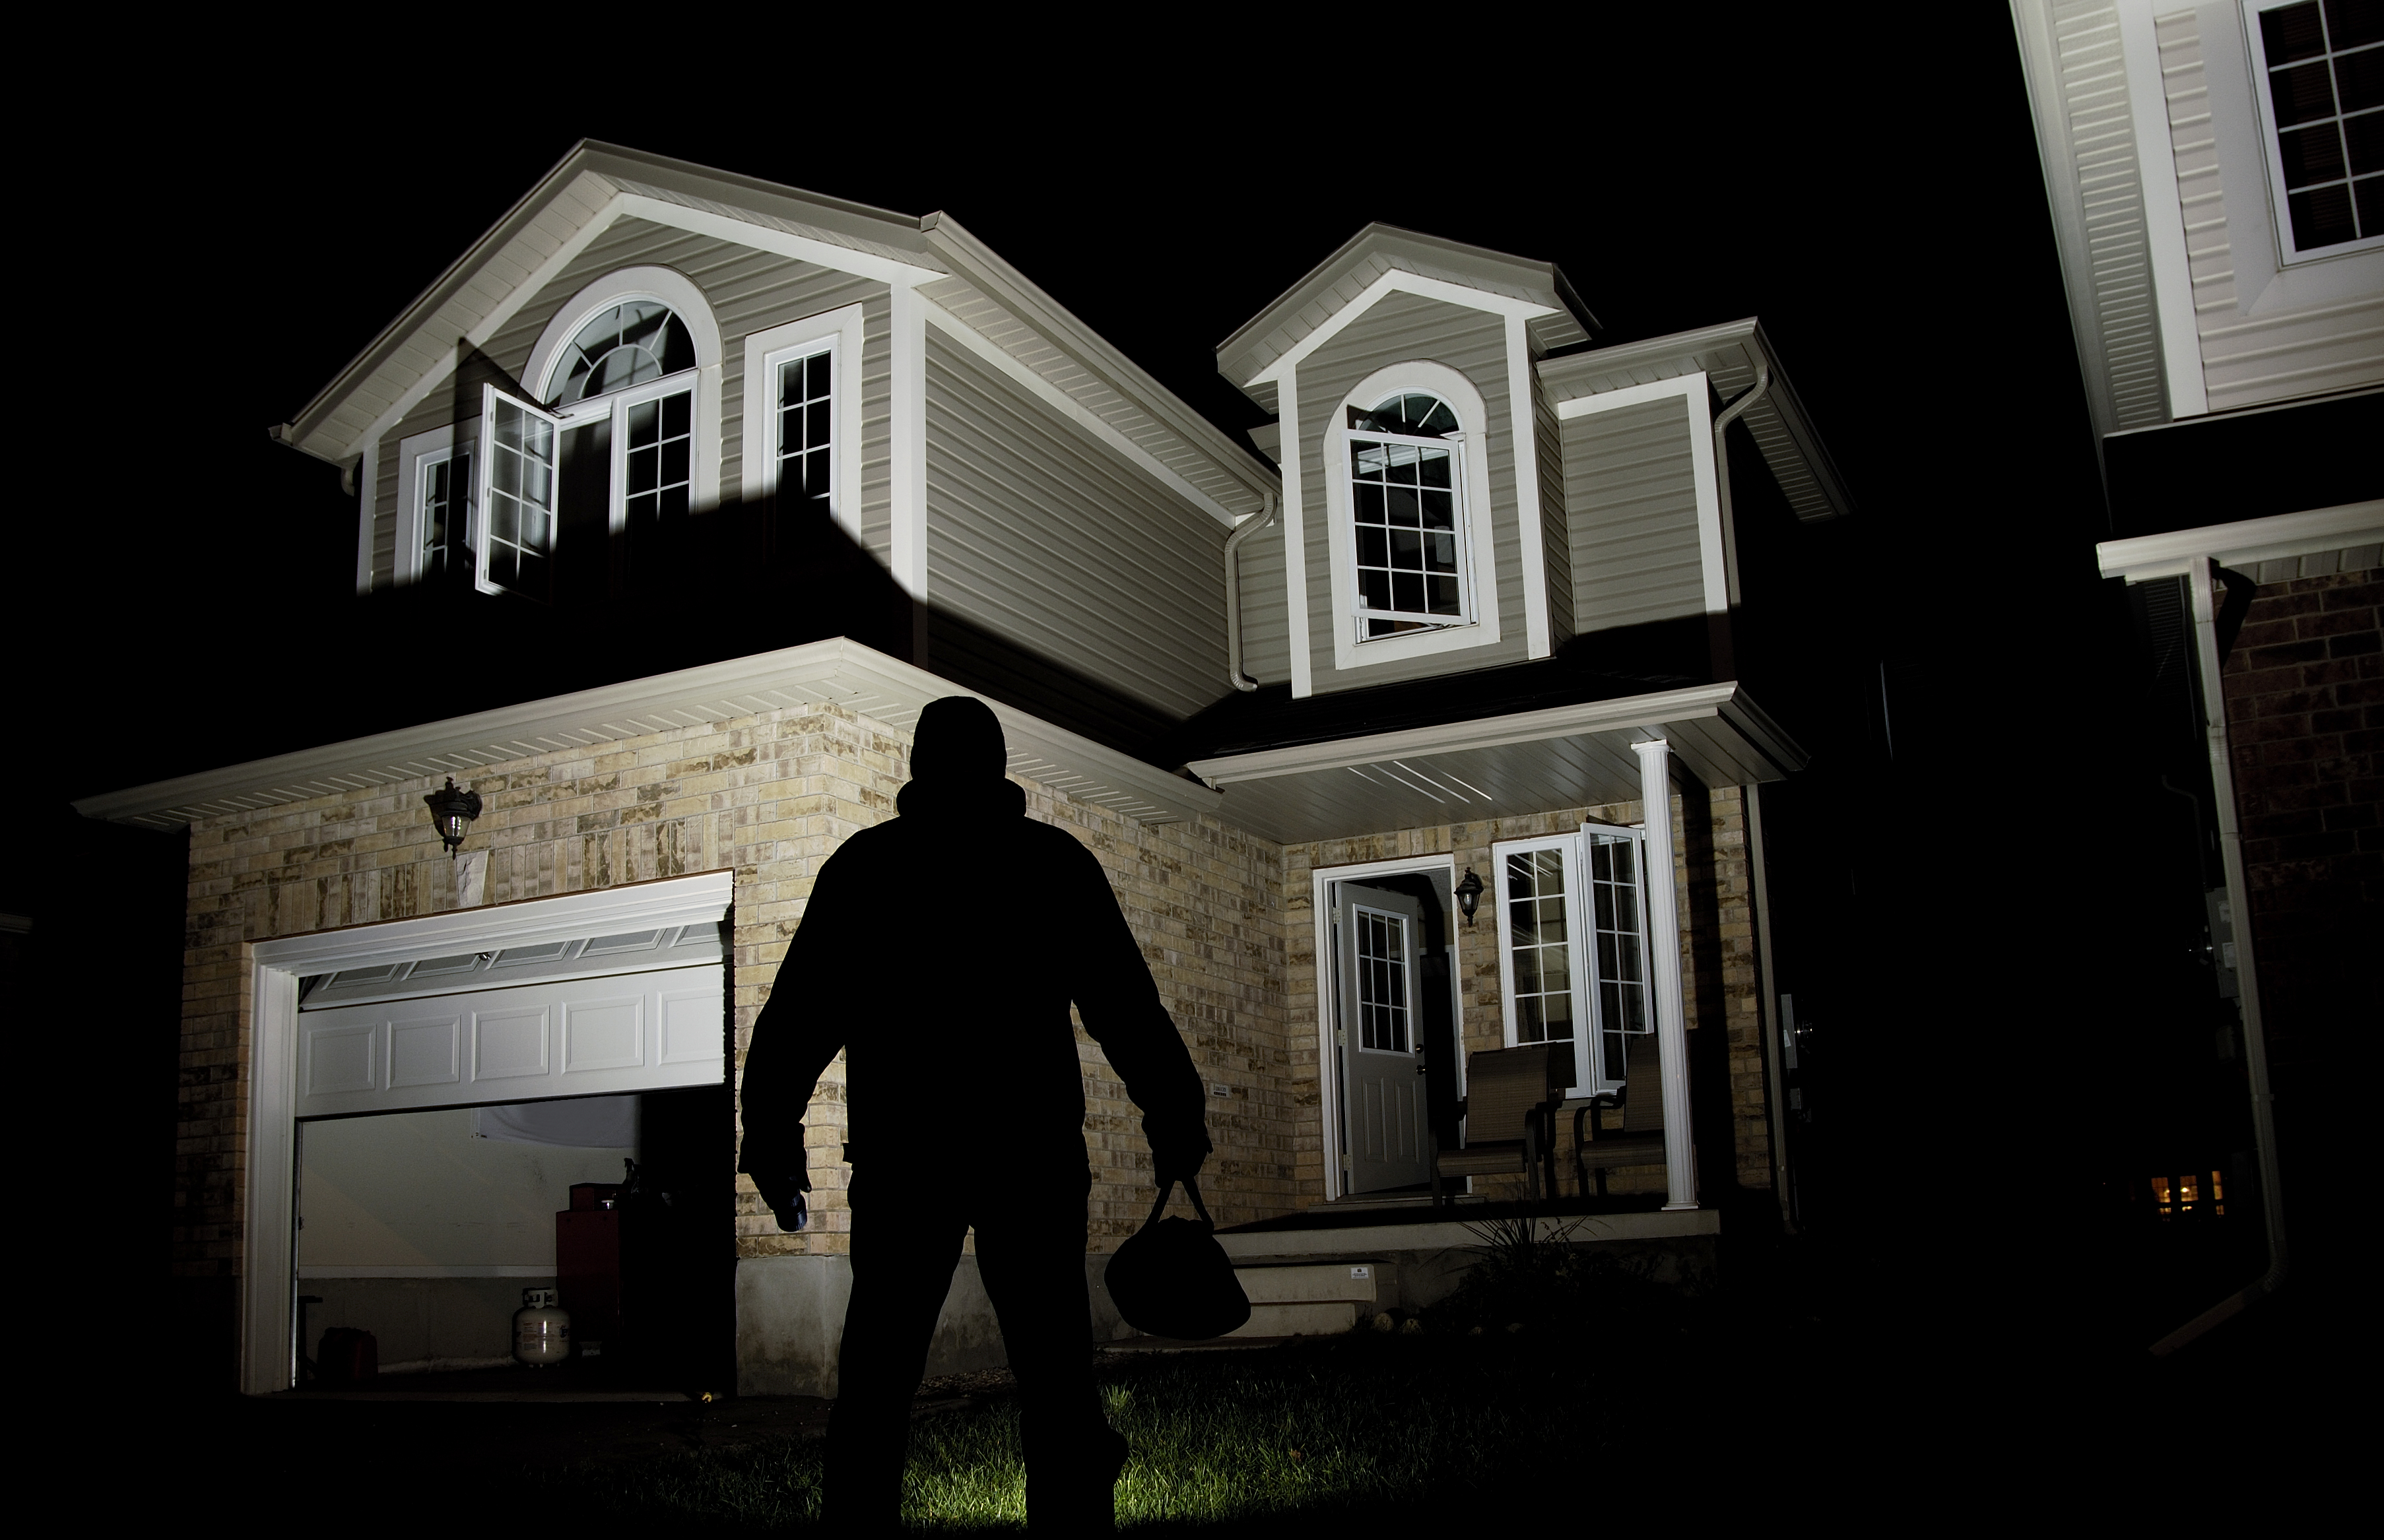 Dallas home alarm security systems home alarm dallas systems home security image solutioingenieria Image collections